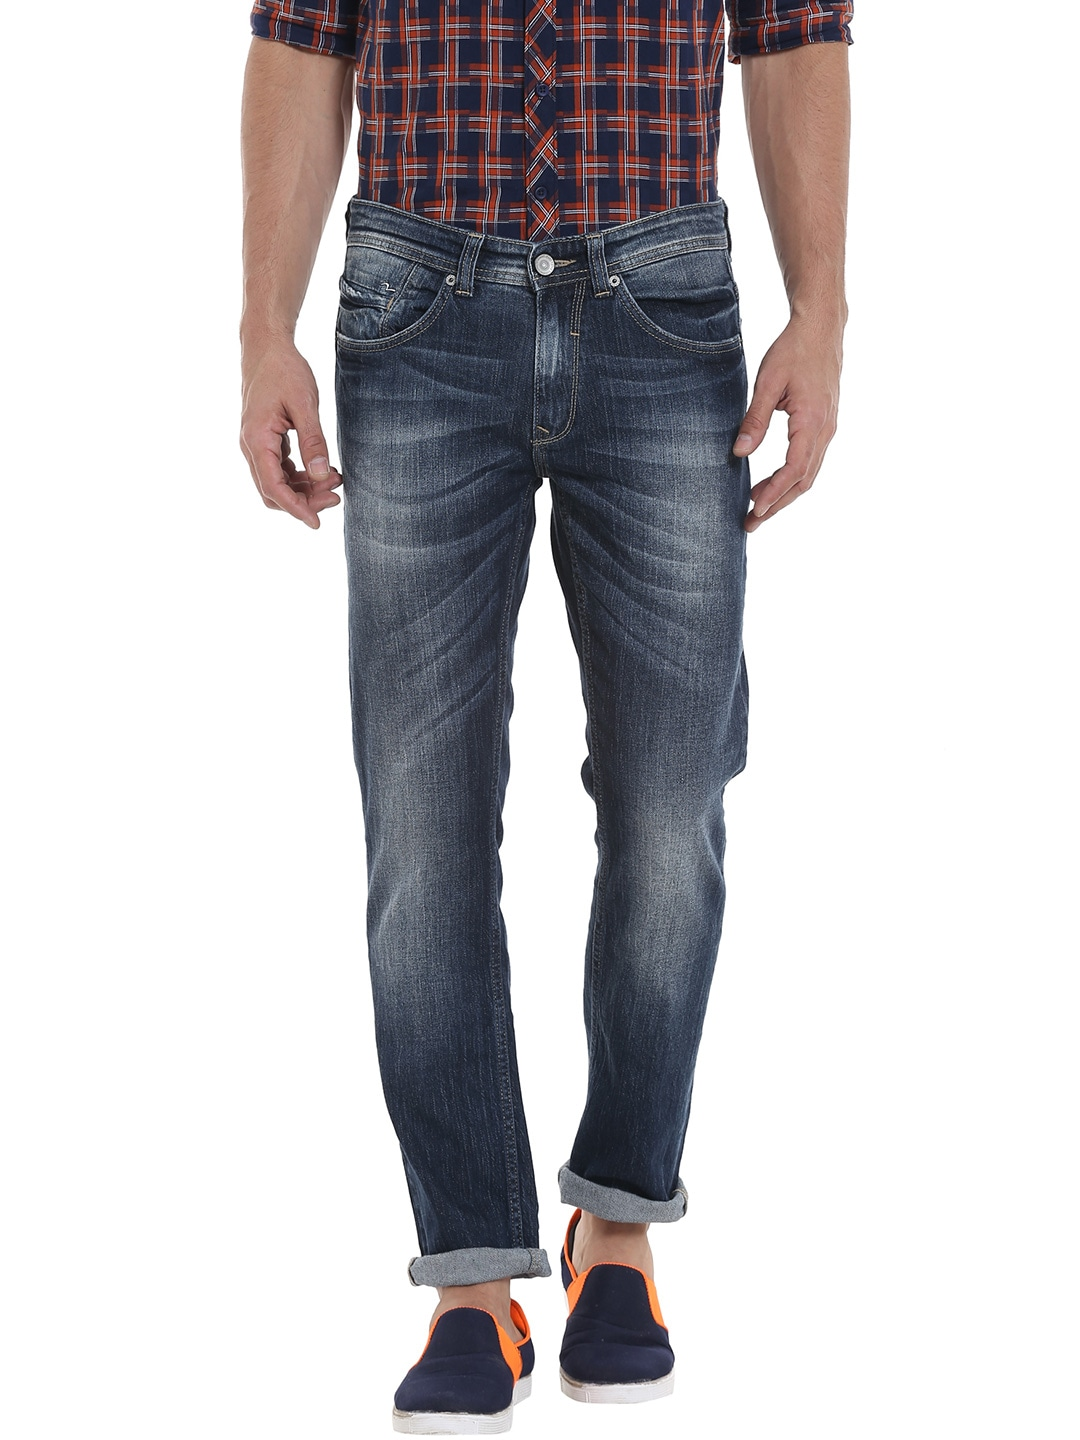 SPYKAR Men Navy Tapered Fit Low-Rise Clean Look Jeans image